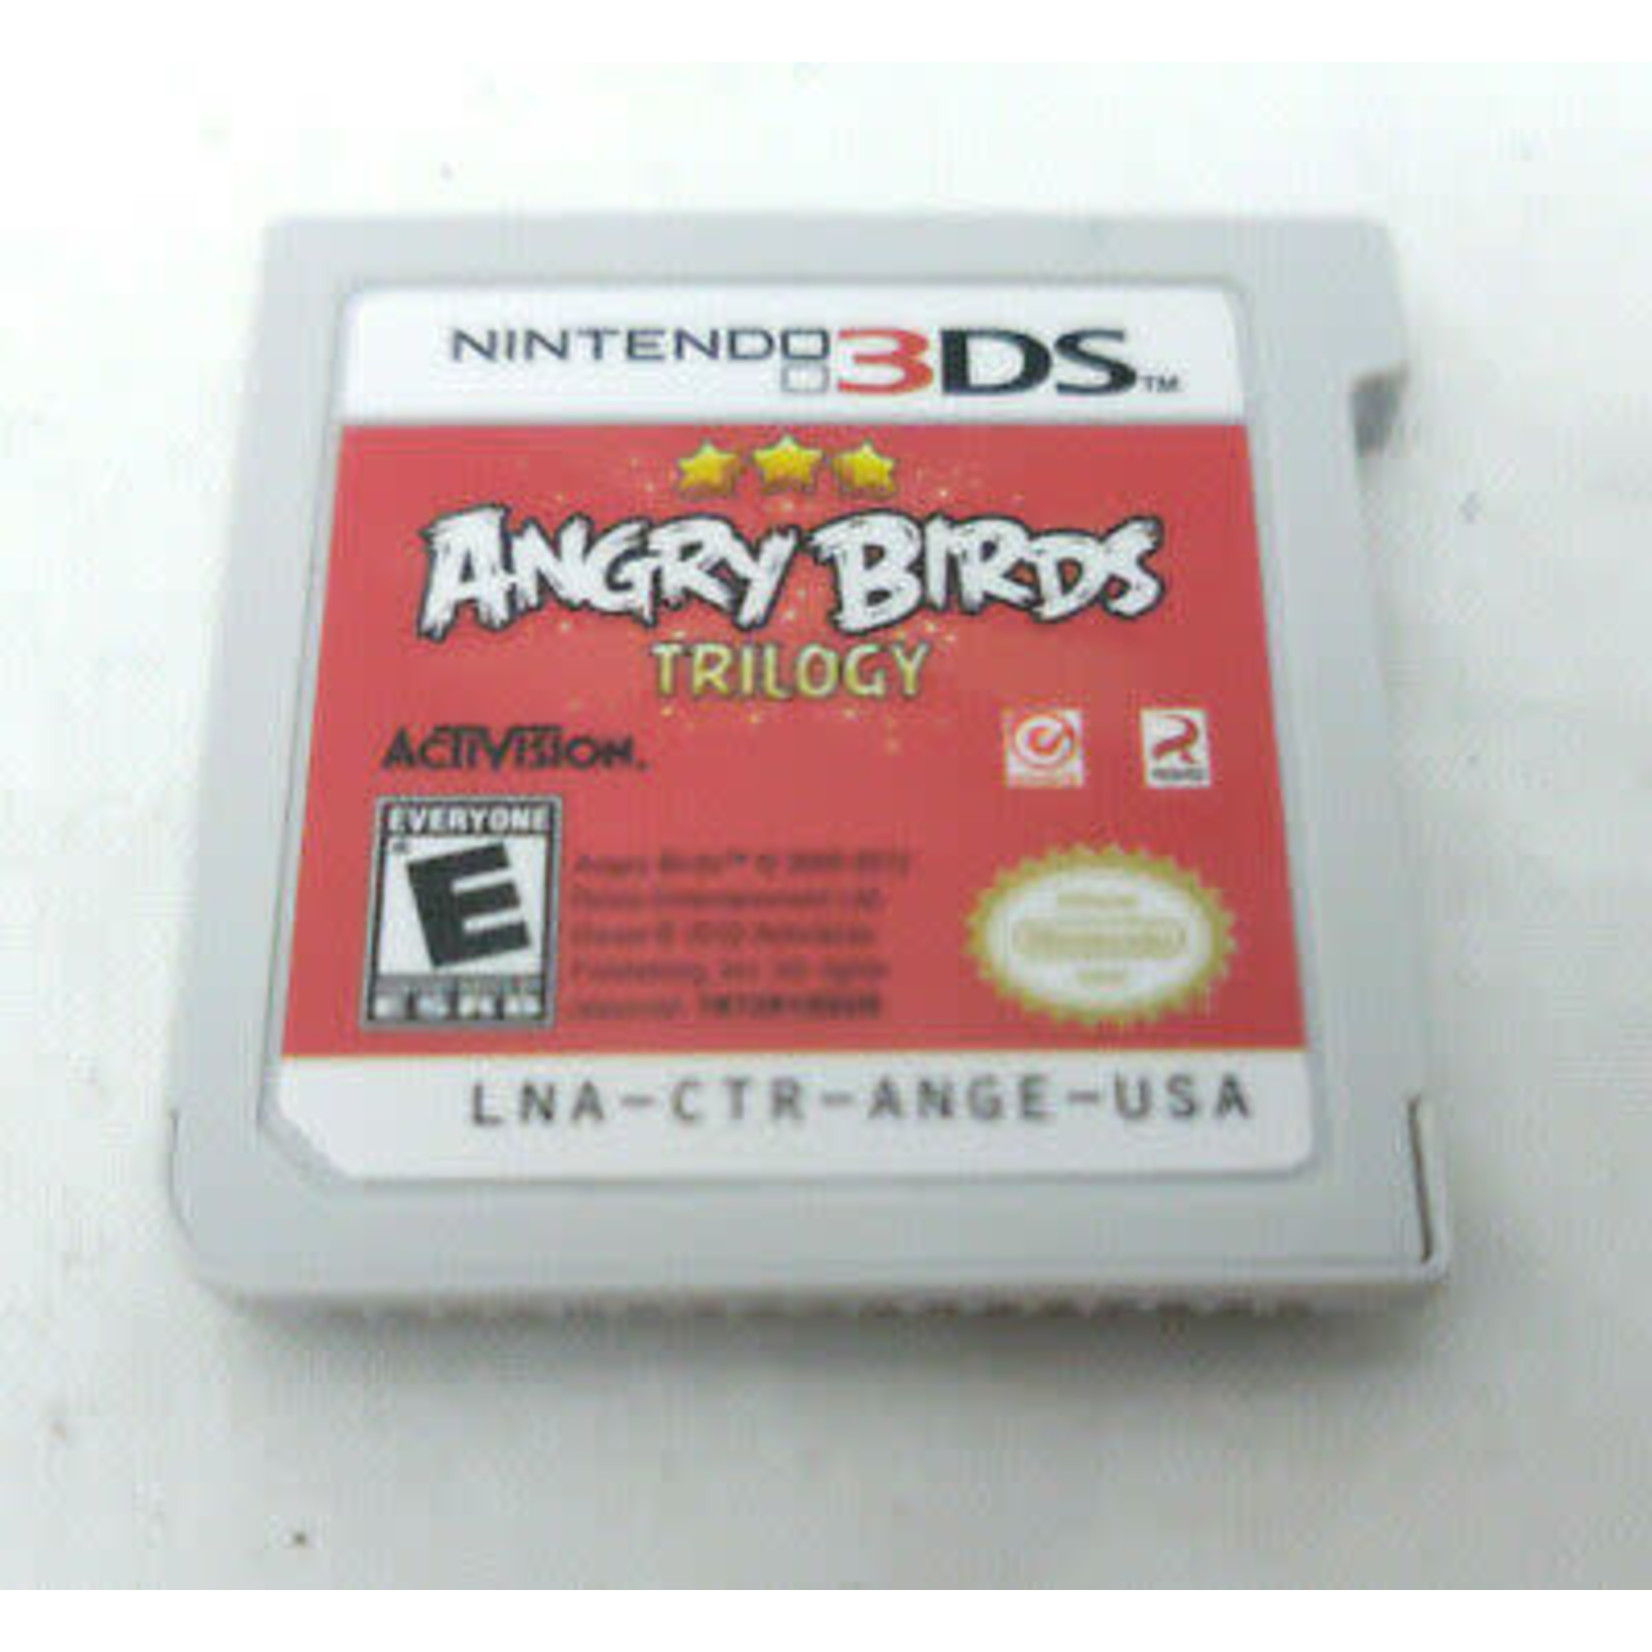 3DSU-Angry Birds Trilogy (Chip Only)